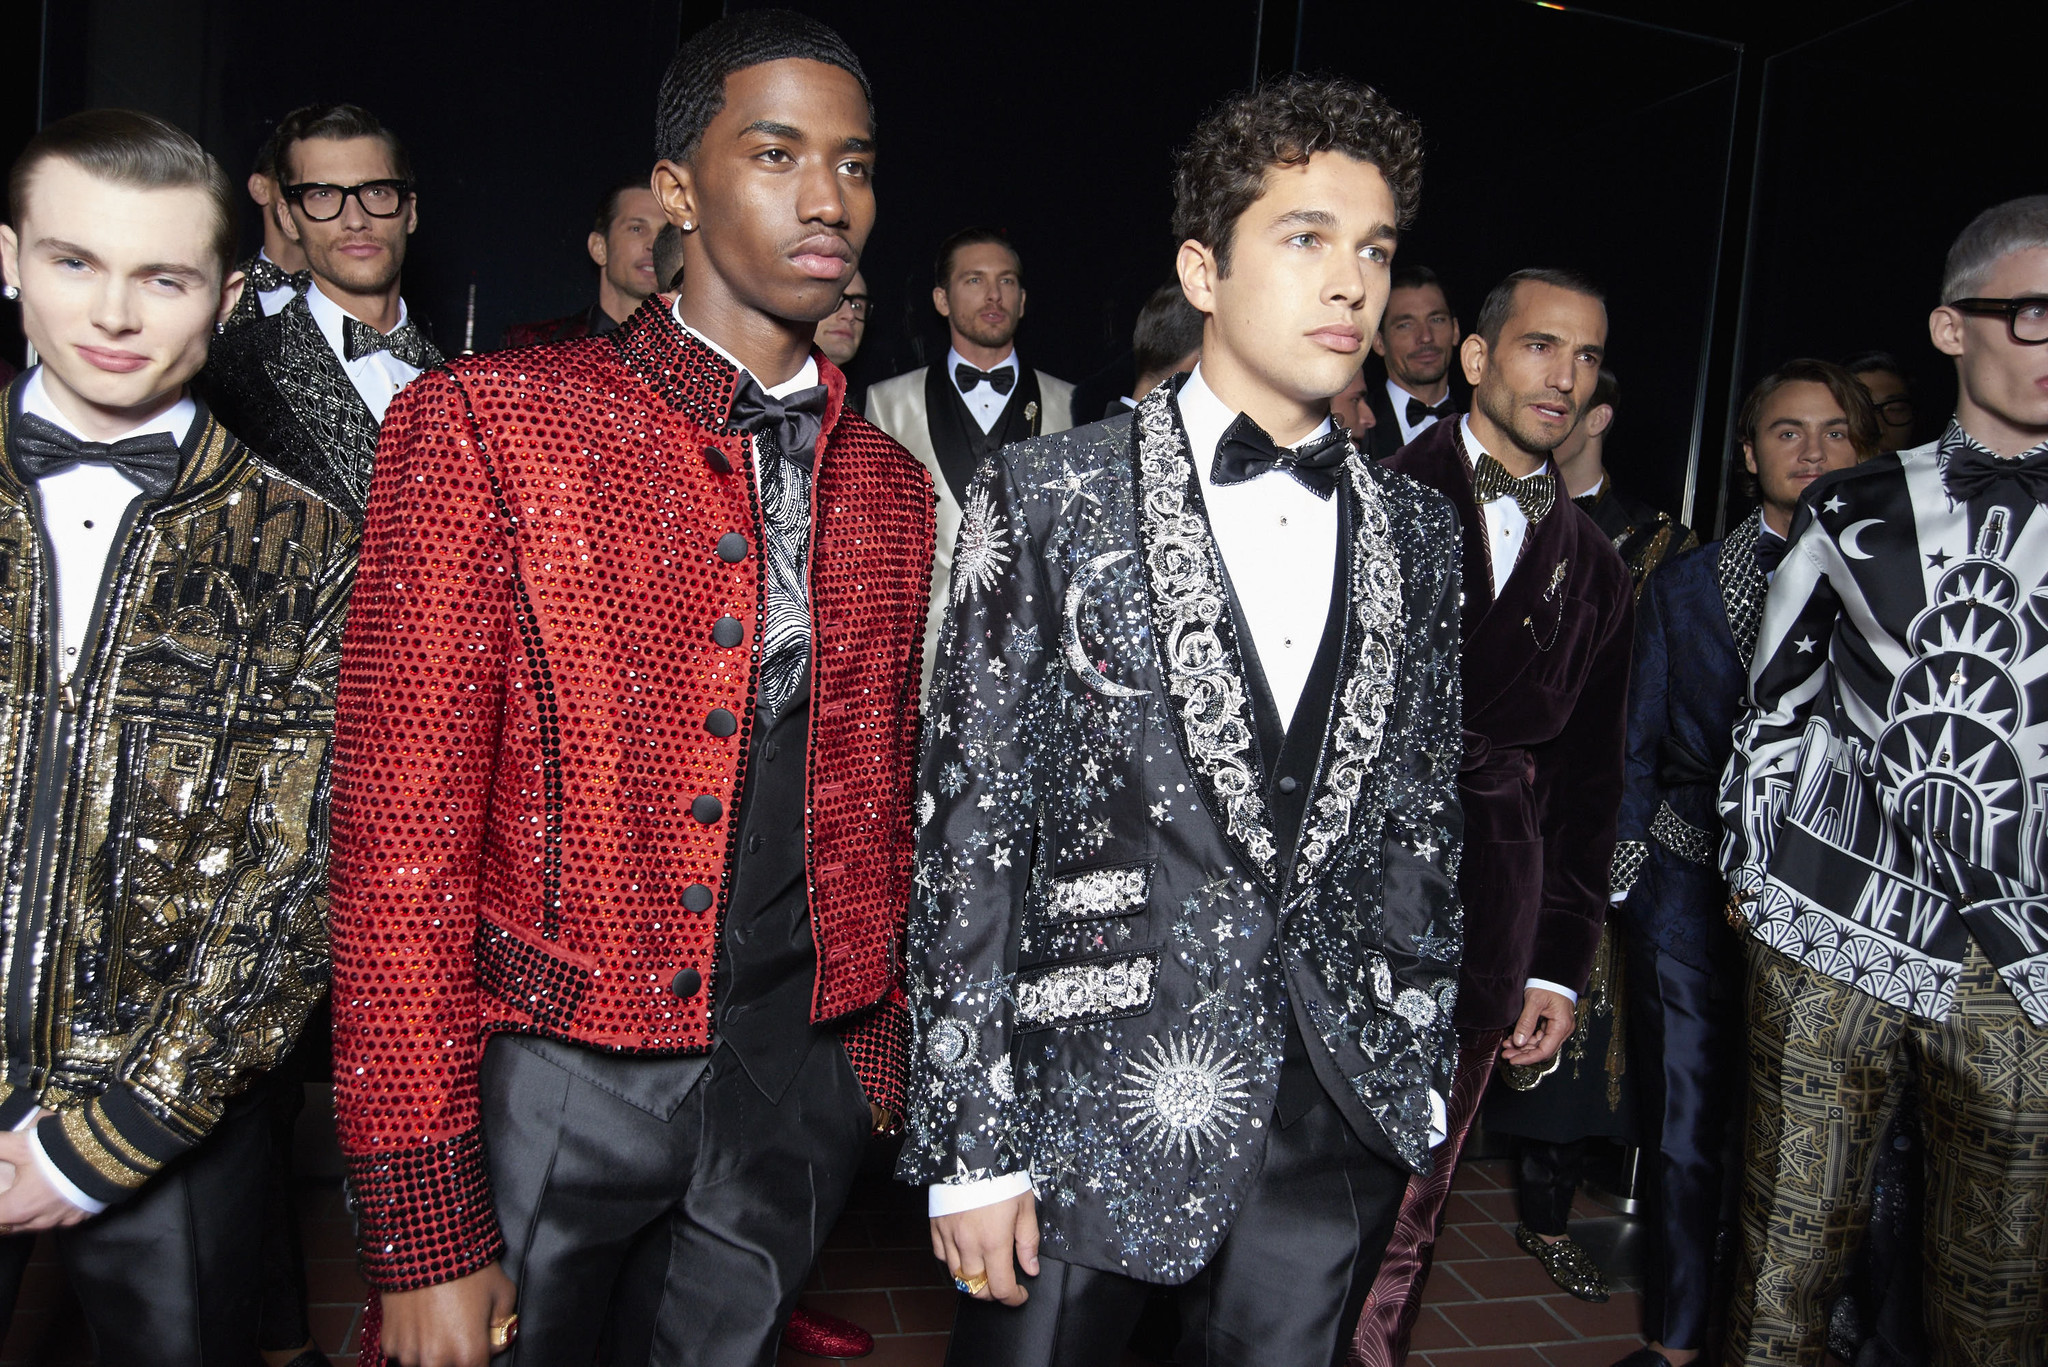 Jack Marsden, Christian Combs and Austin Mahone waiting backstage at the Dolce&Gabbana Alta Sartoria